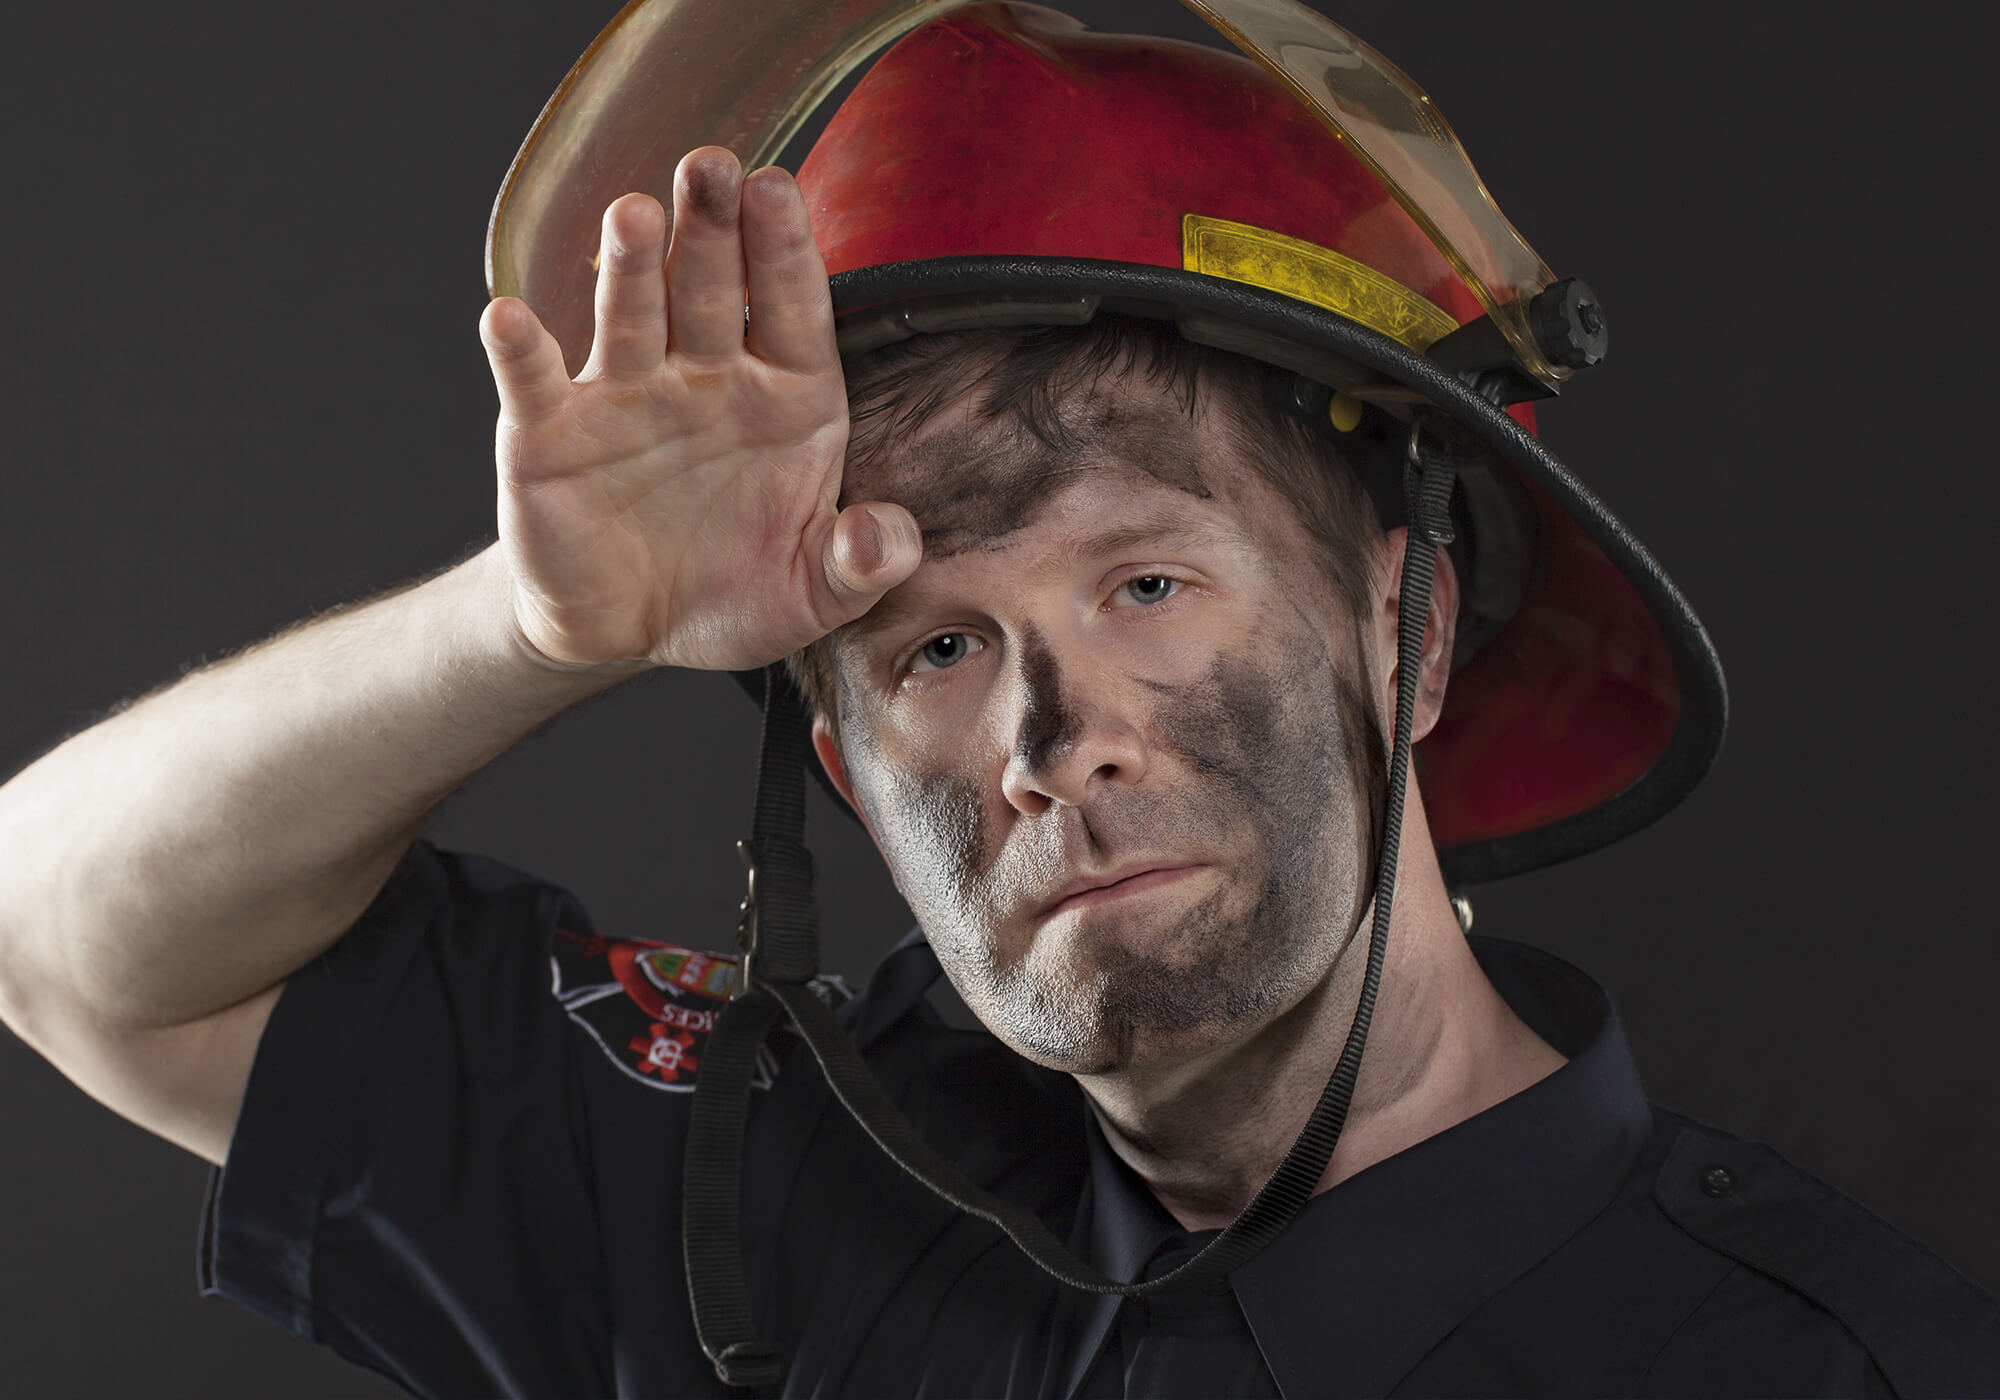 firefighter with soot on face